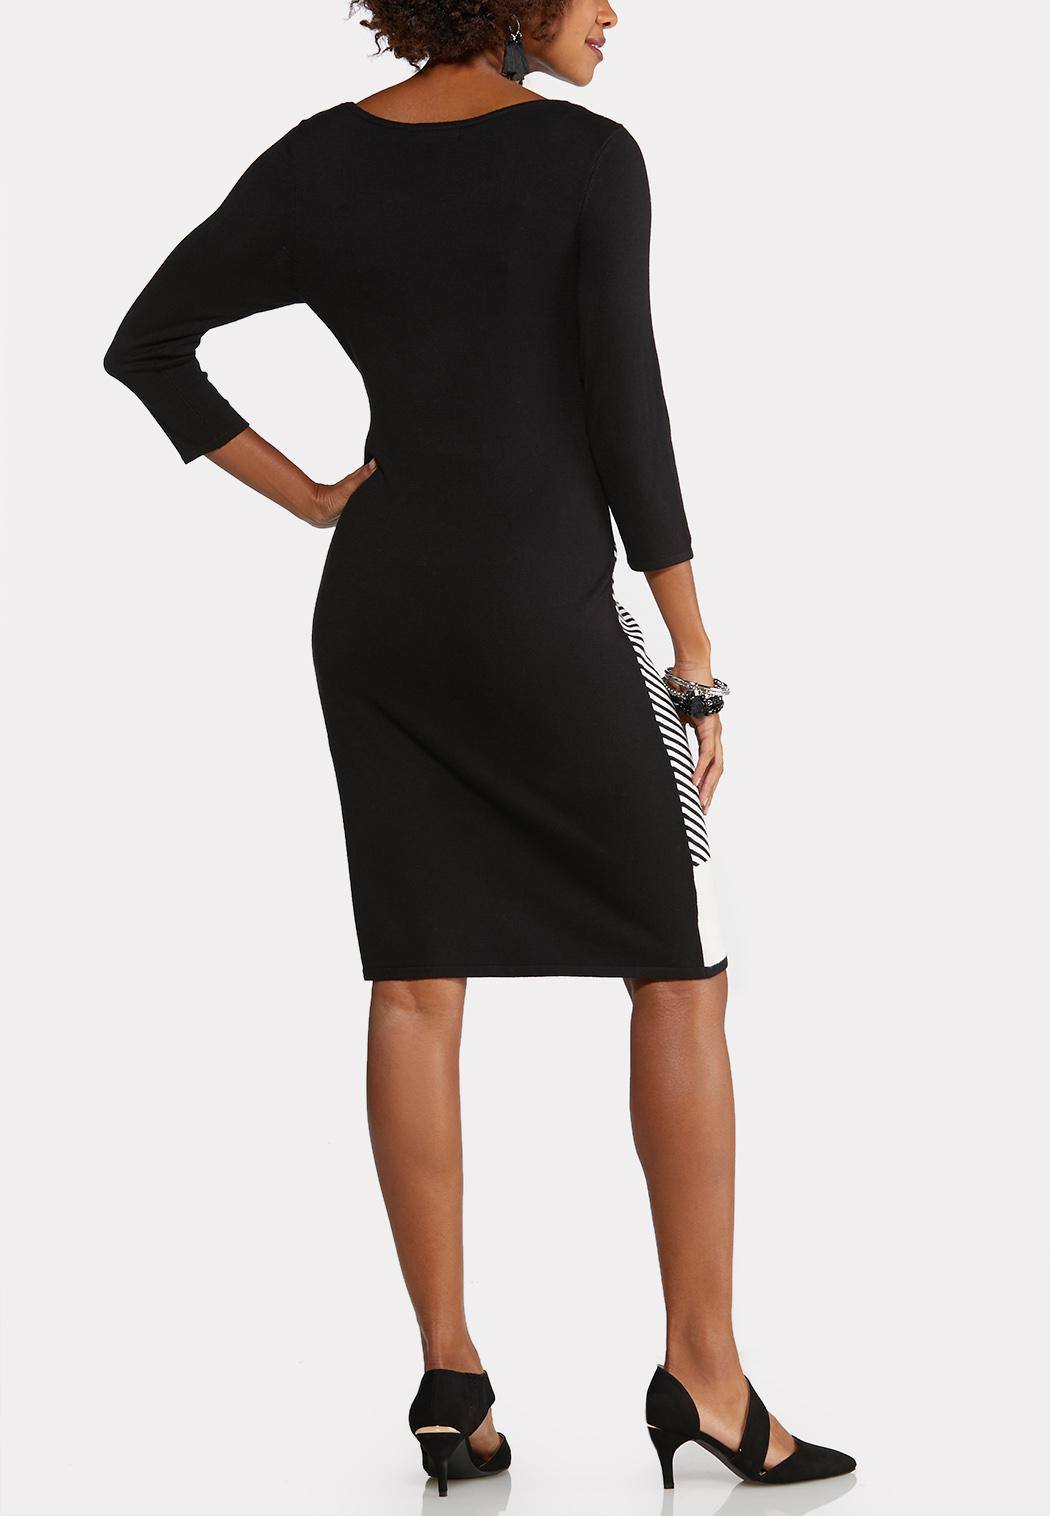 Plus Size Black and White Sweater Dress (Item #43989846)